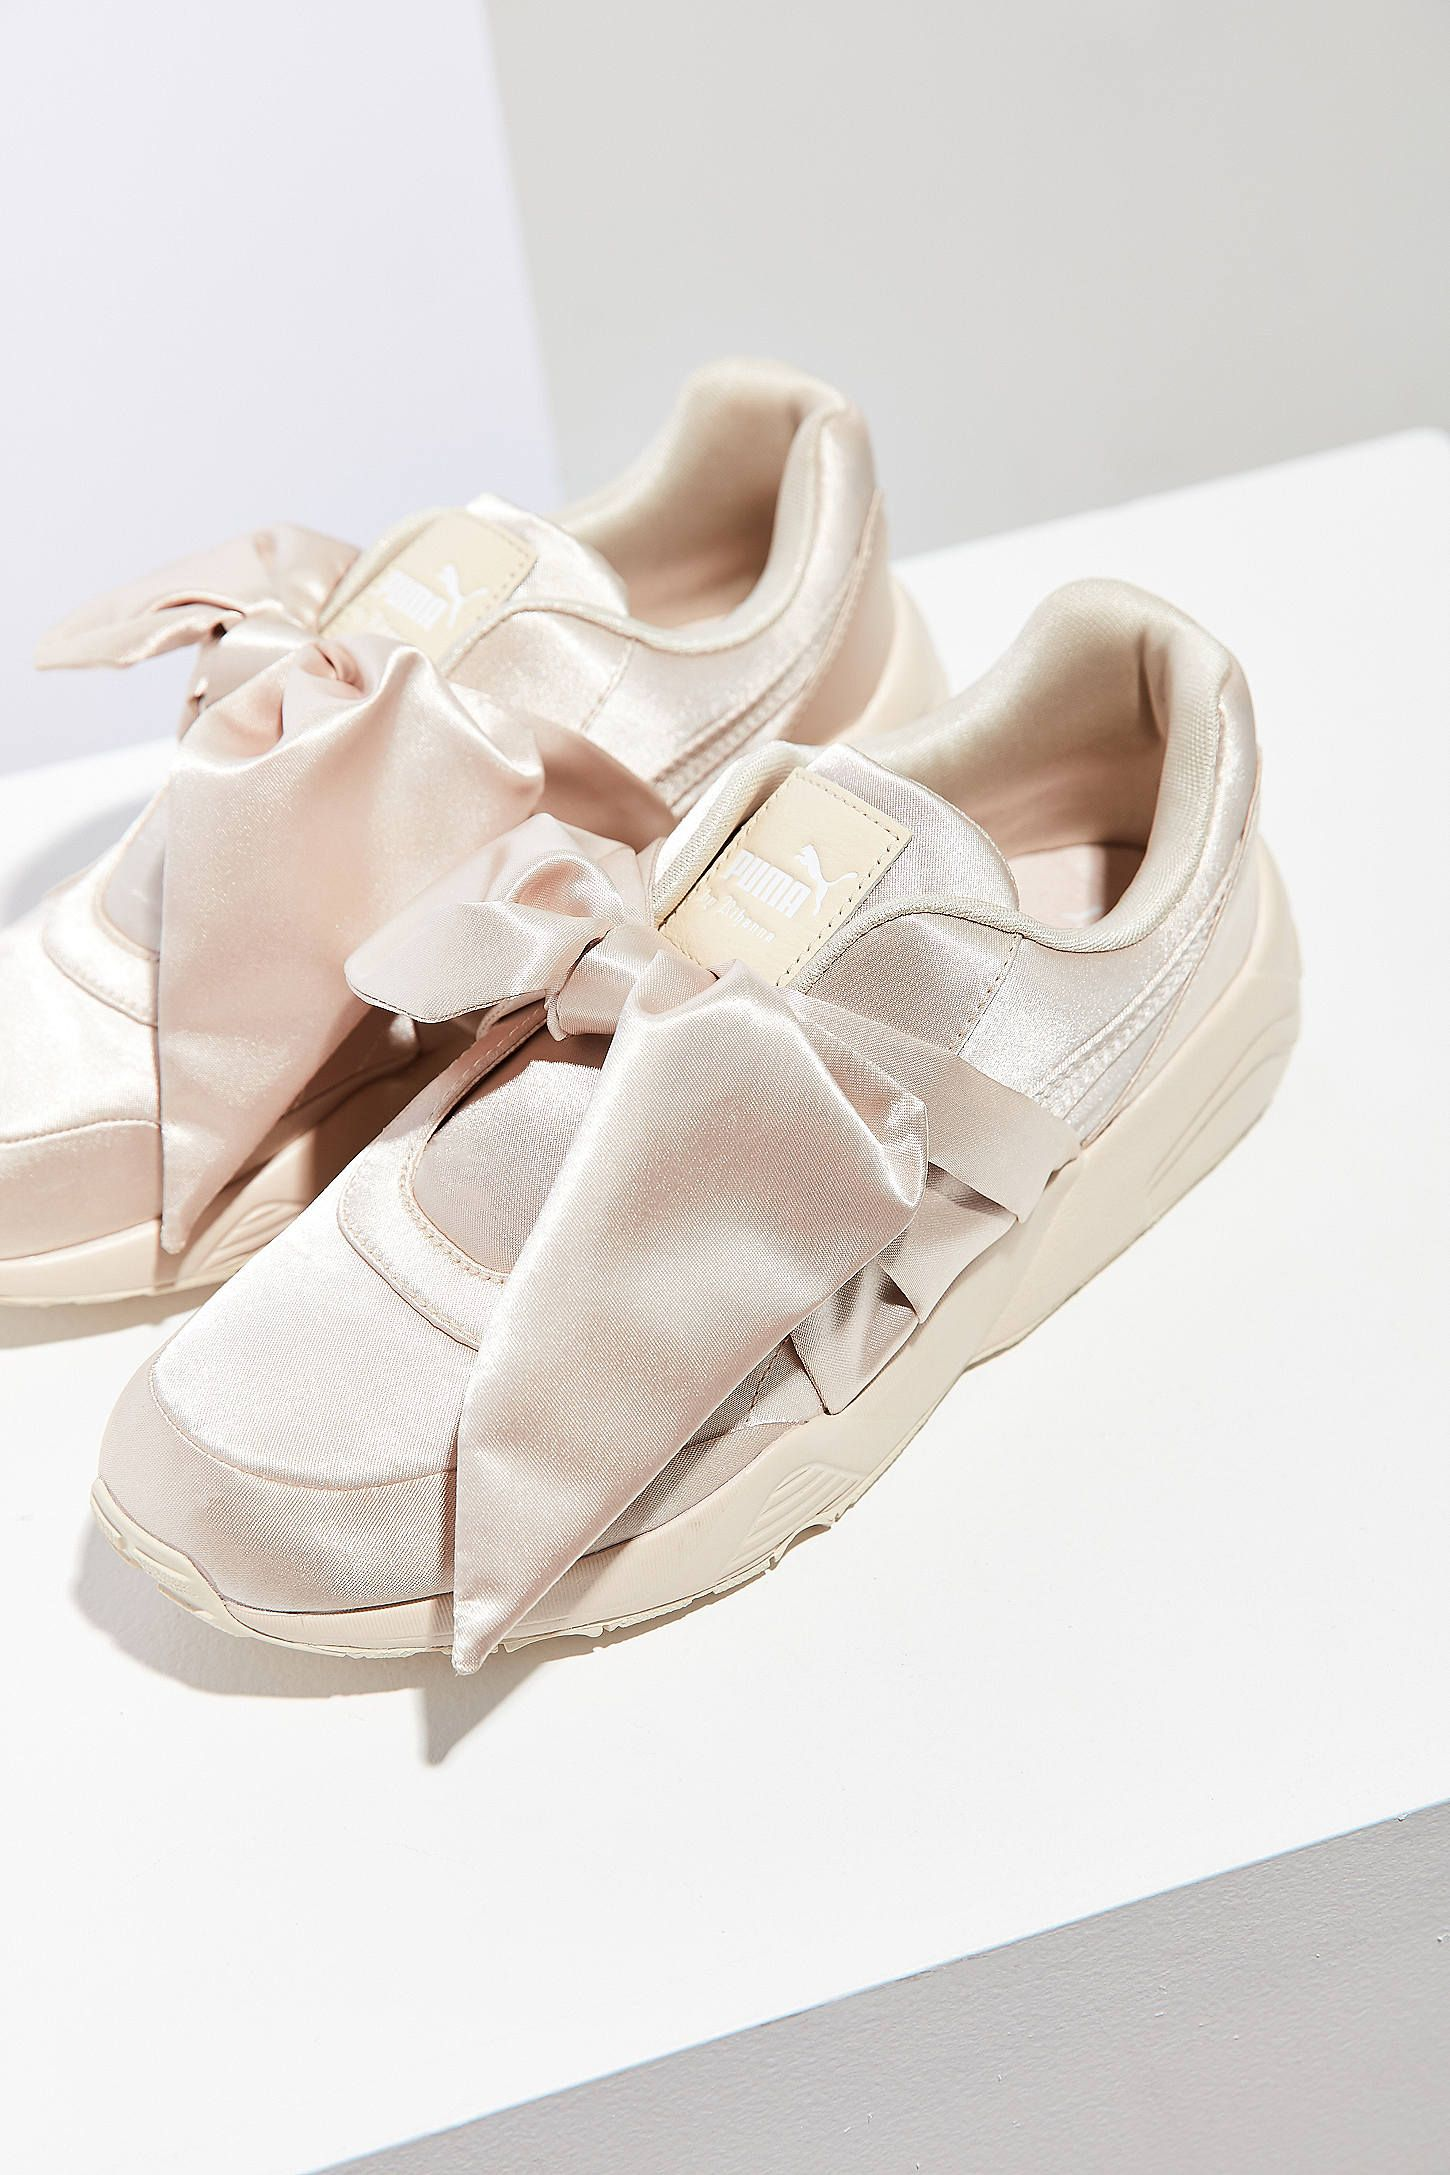 Slide View: 1: Puma Fenty by Rihanna Satin Bow Sneaker ...